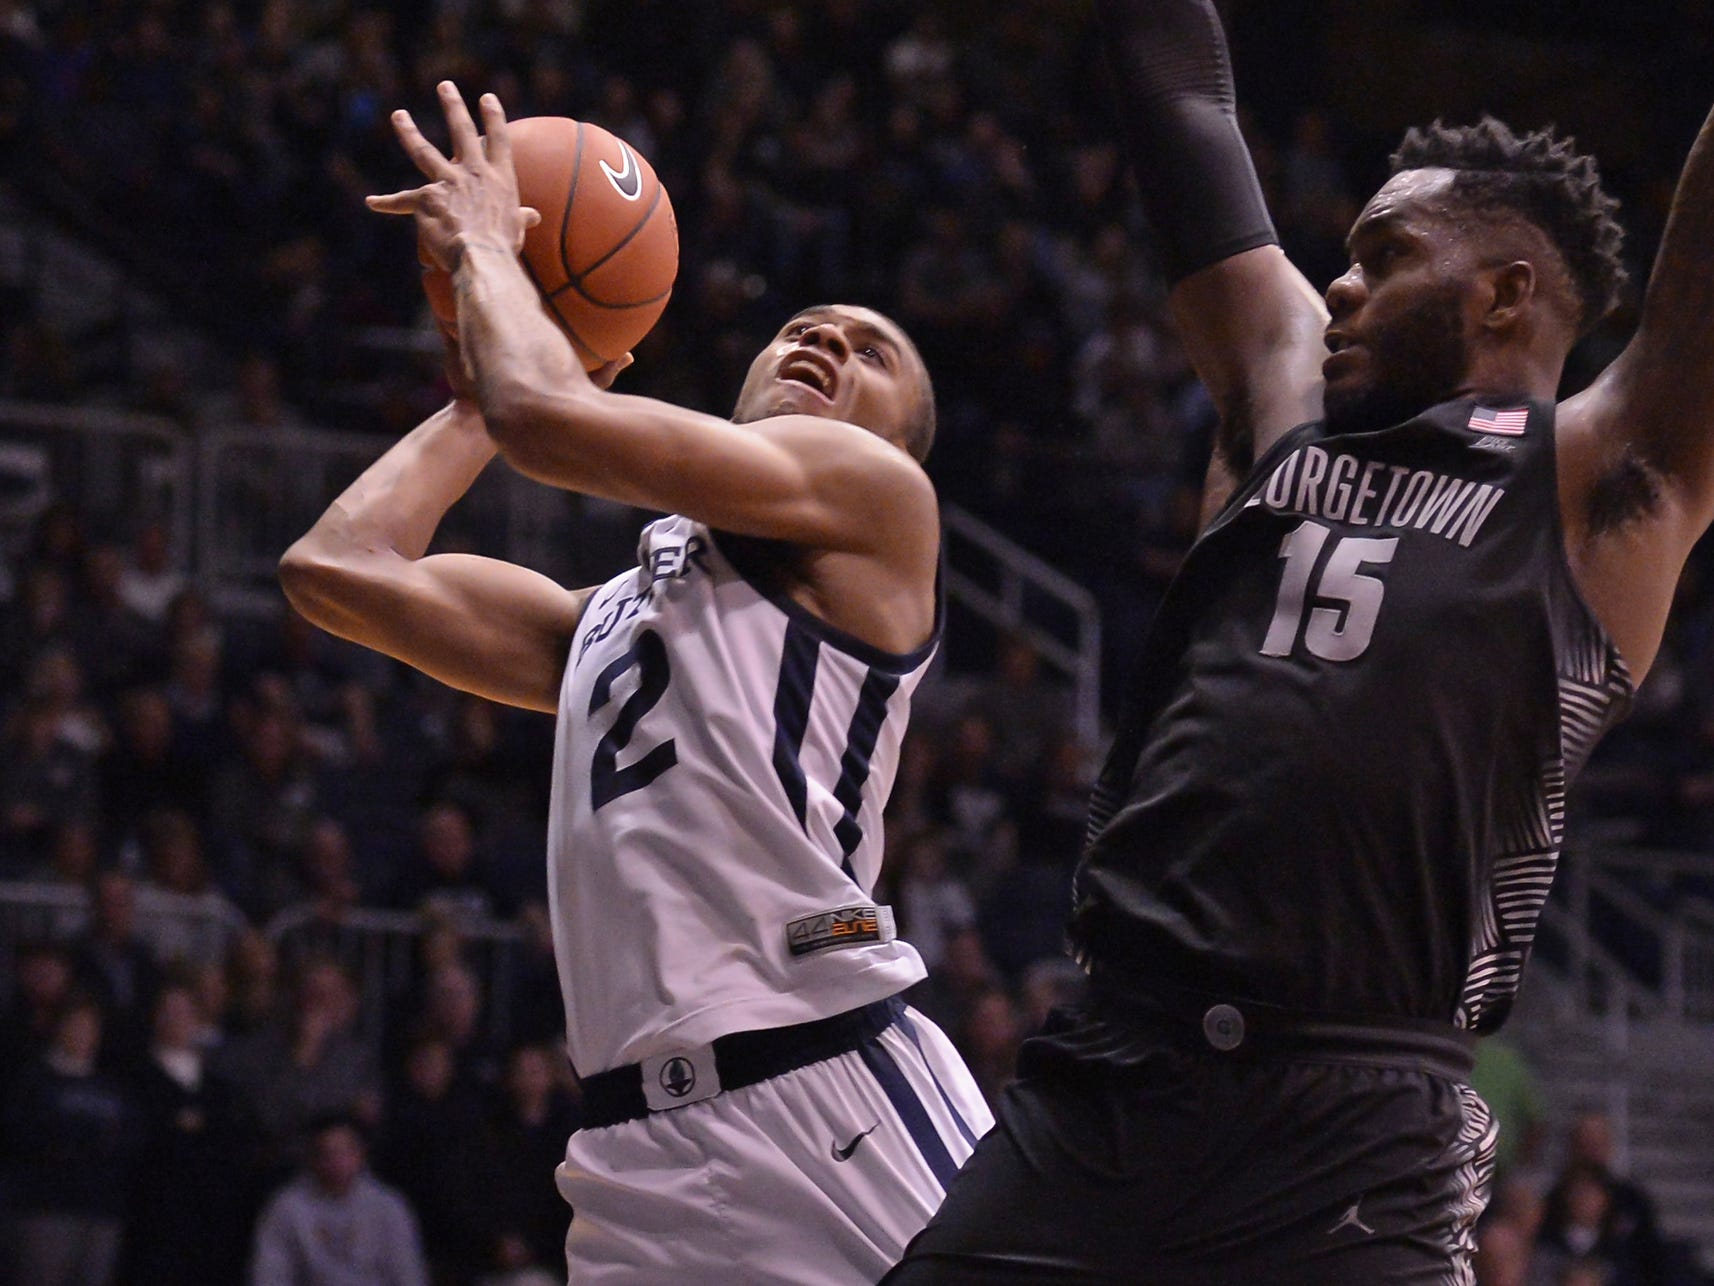 Butler Bulldogs guard Aaron Thompson (2) scores over Georgetown Hoyas center Jessie Govan (15) during the second half of game action between Butler University and Georgetown University, at Hinkle Fieldhouse in Indianapolis, Indiana on Wednesday, Jan. 2, 2019. The Butler Bulldogs fell to the Georgetown Hoyas 84-76.